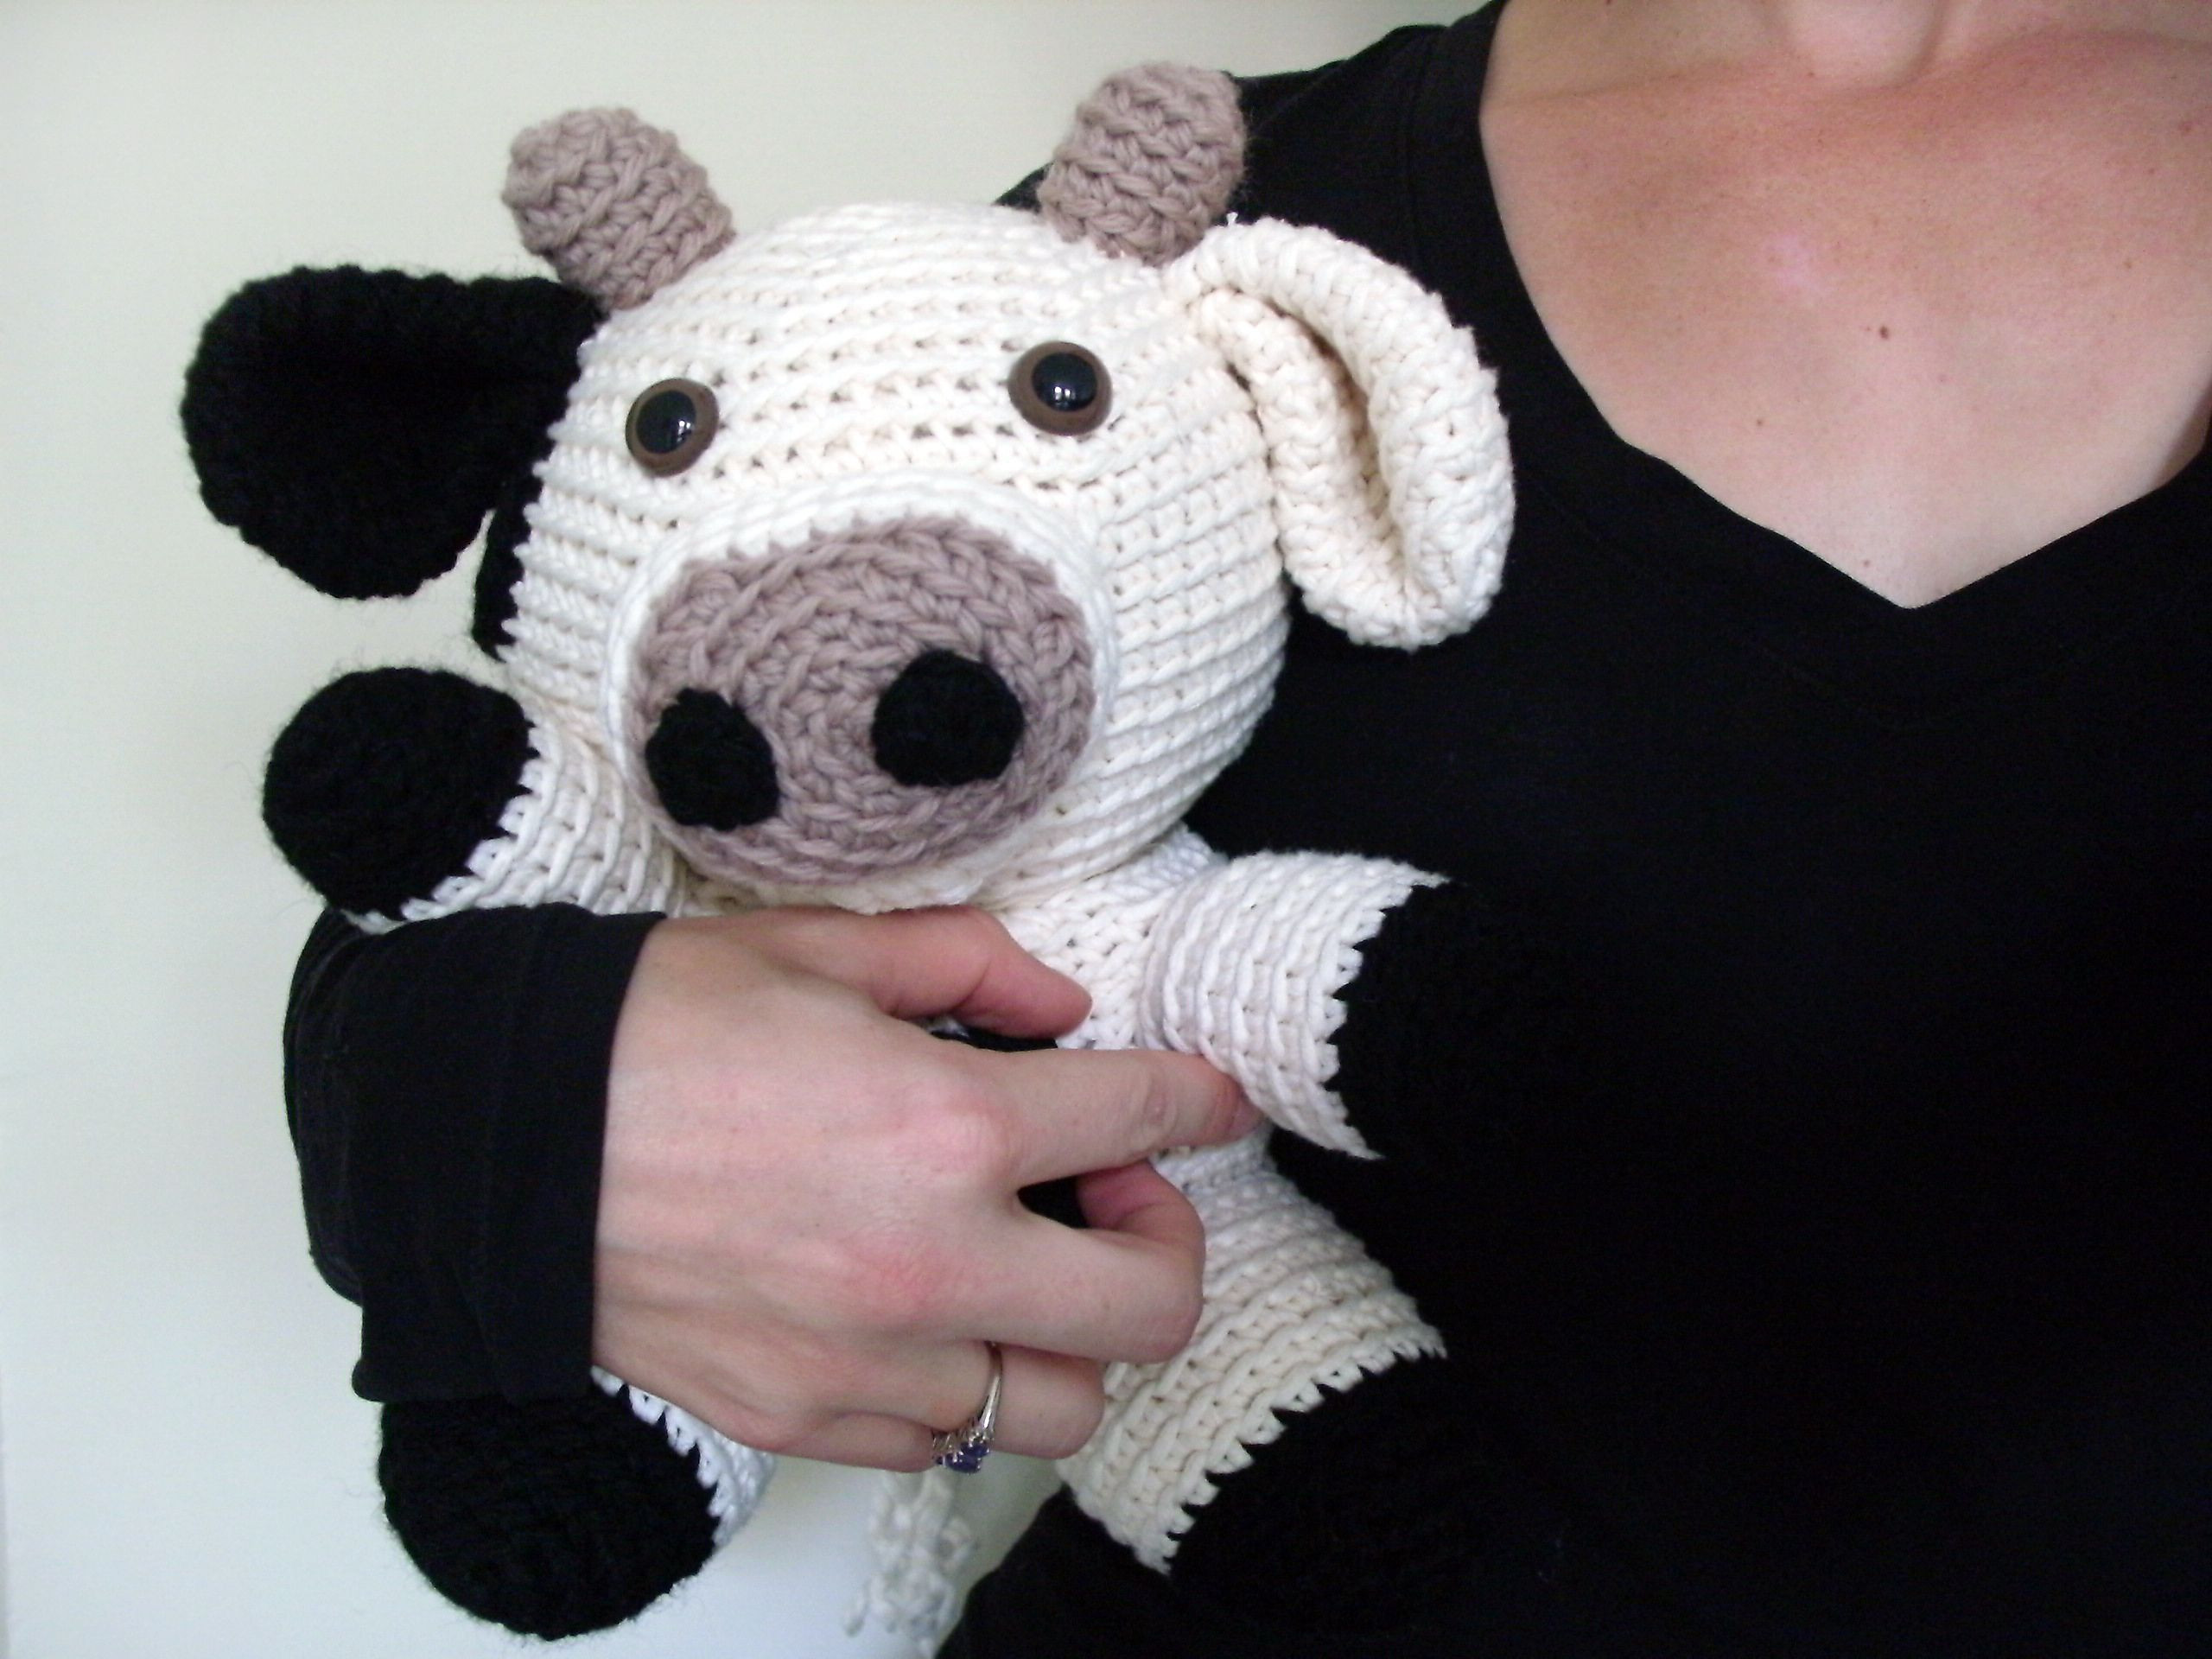 Crochet Animal Patterns Beautiful Amigurumi Jackie the Cow Pattern by Stacey Trock Of Incredible 48 Images Crochet Animal Patterns